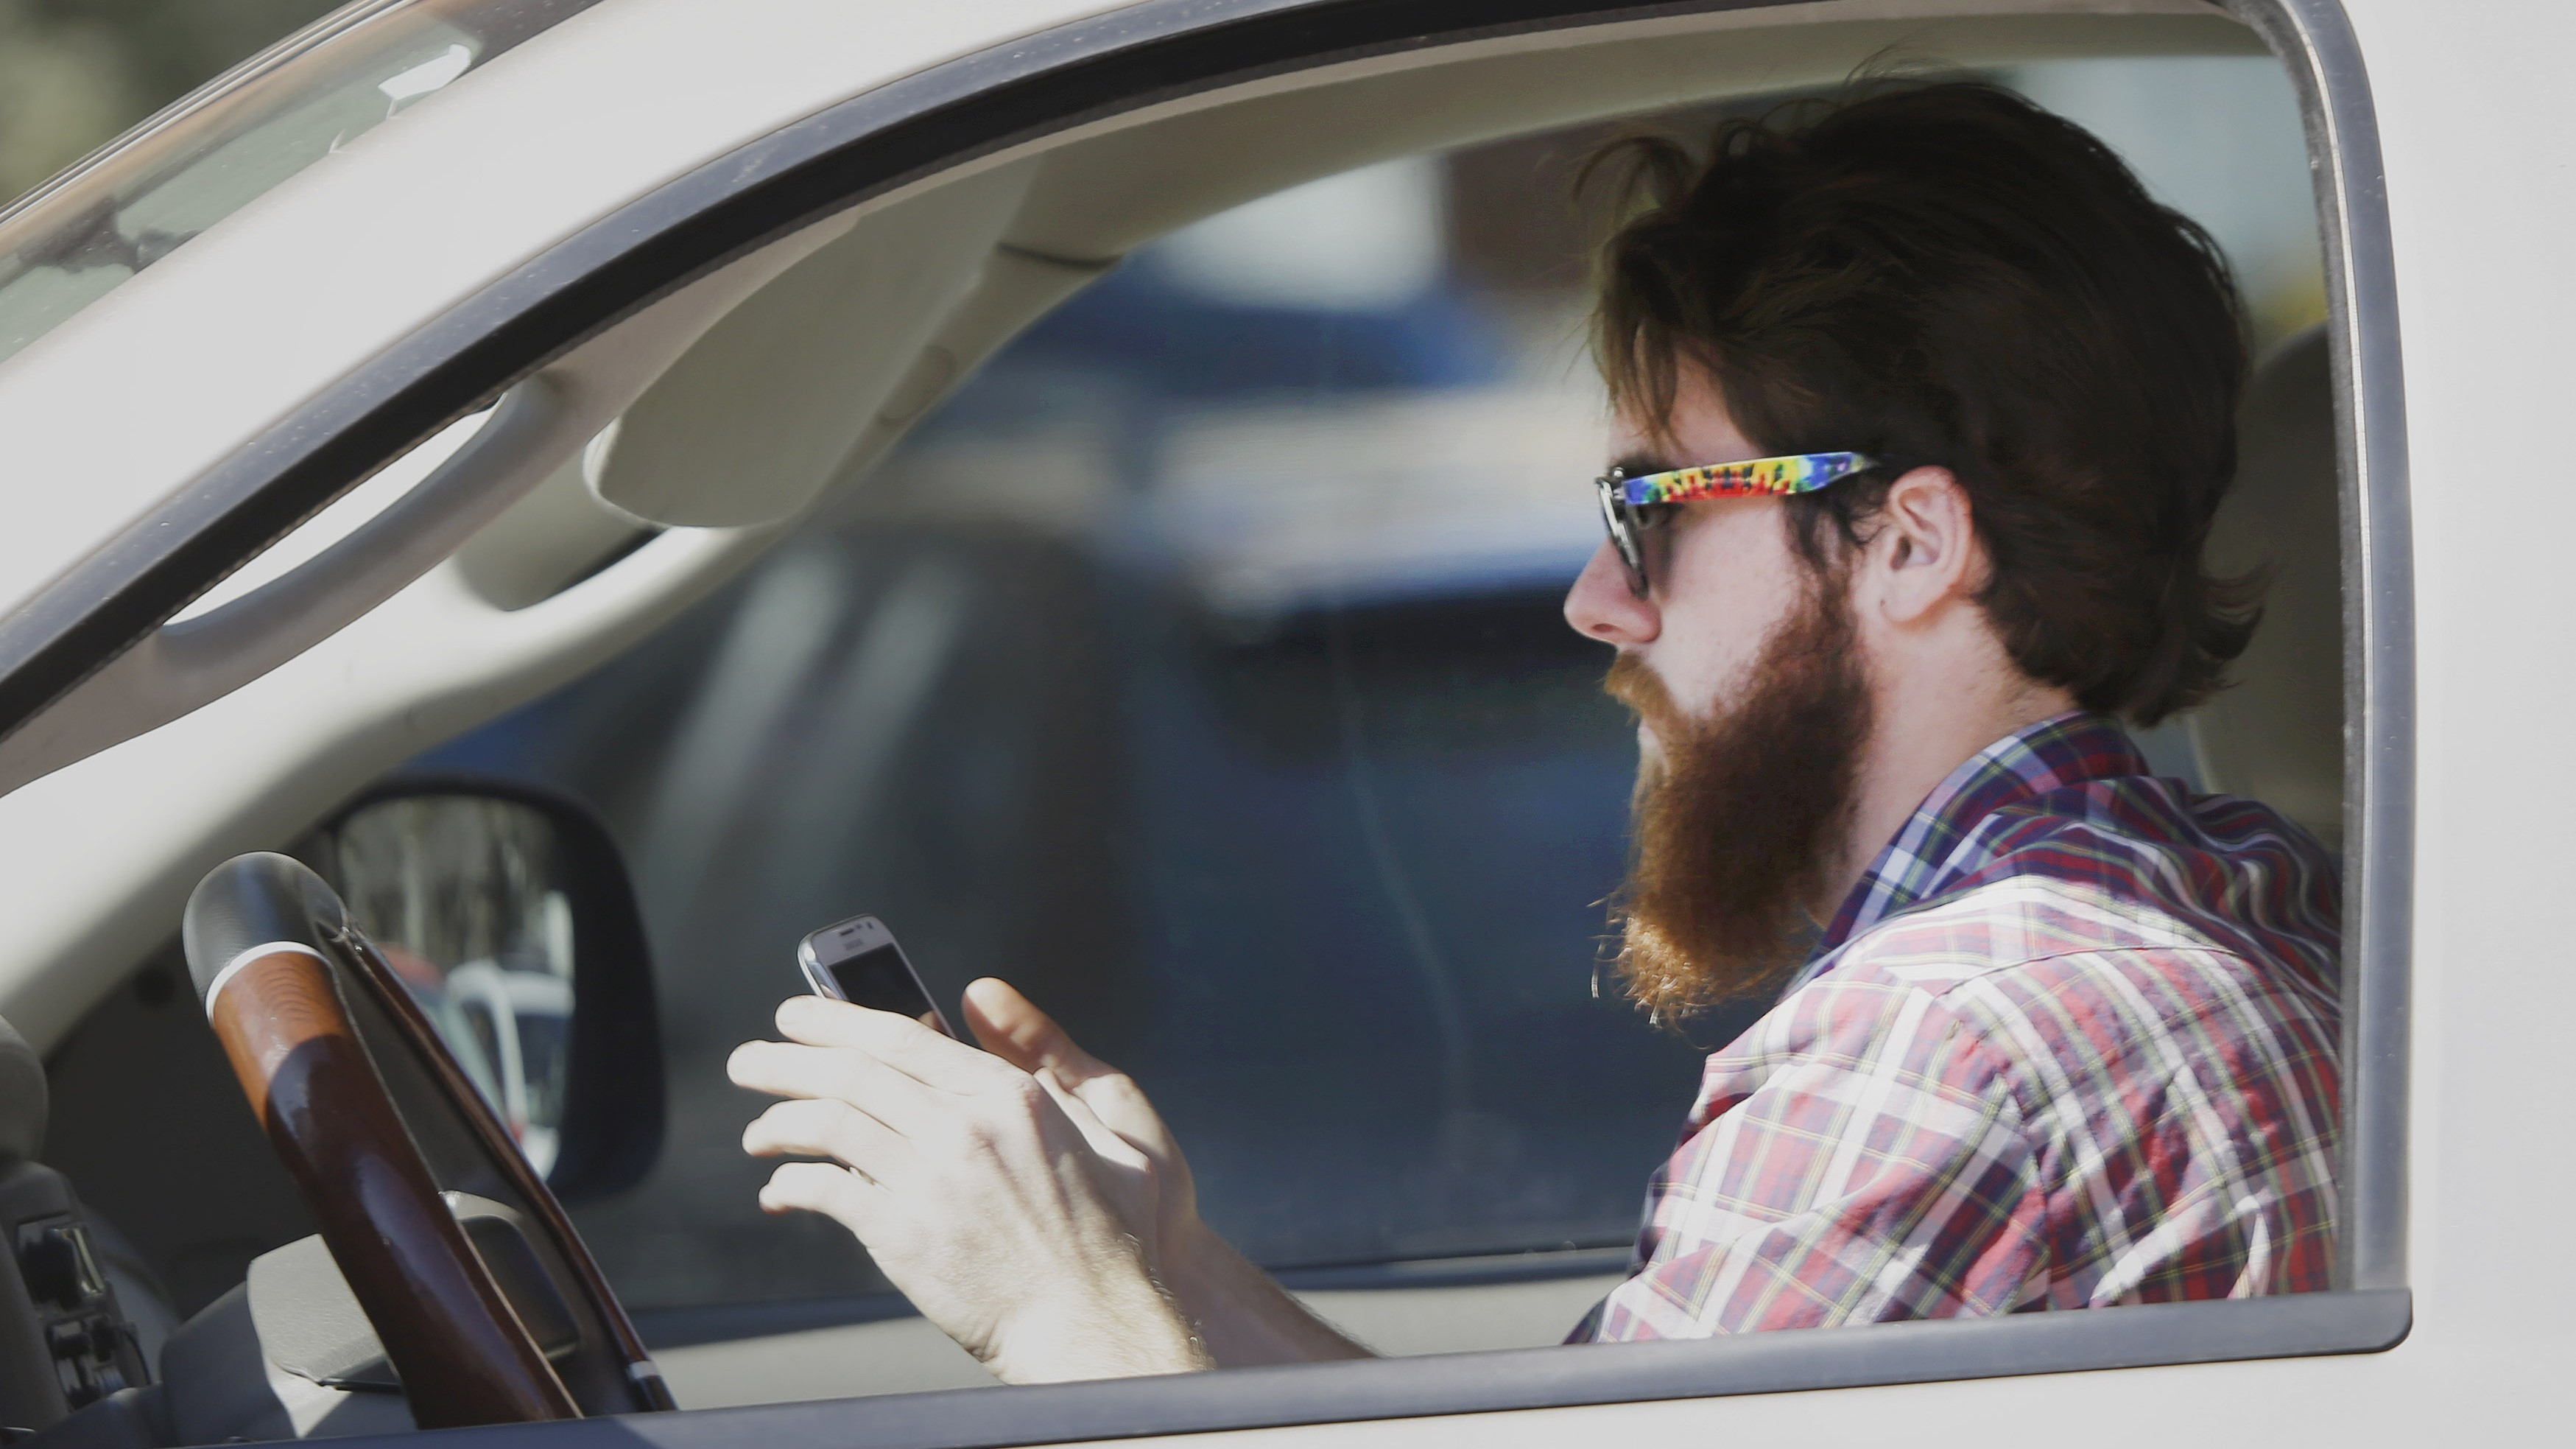 An man works his phone as he drives through traffic in Dallas, Tuesday, Feb. 26, 2013. Texas lawmakers are considering a statewide ban on texting while driving.